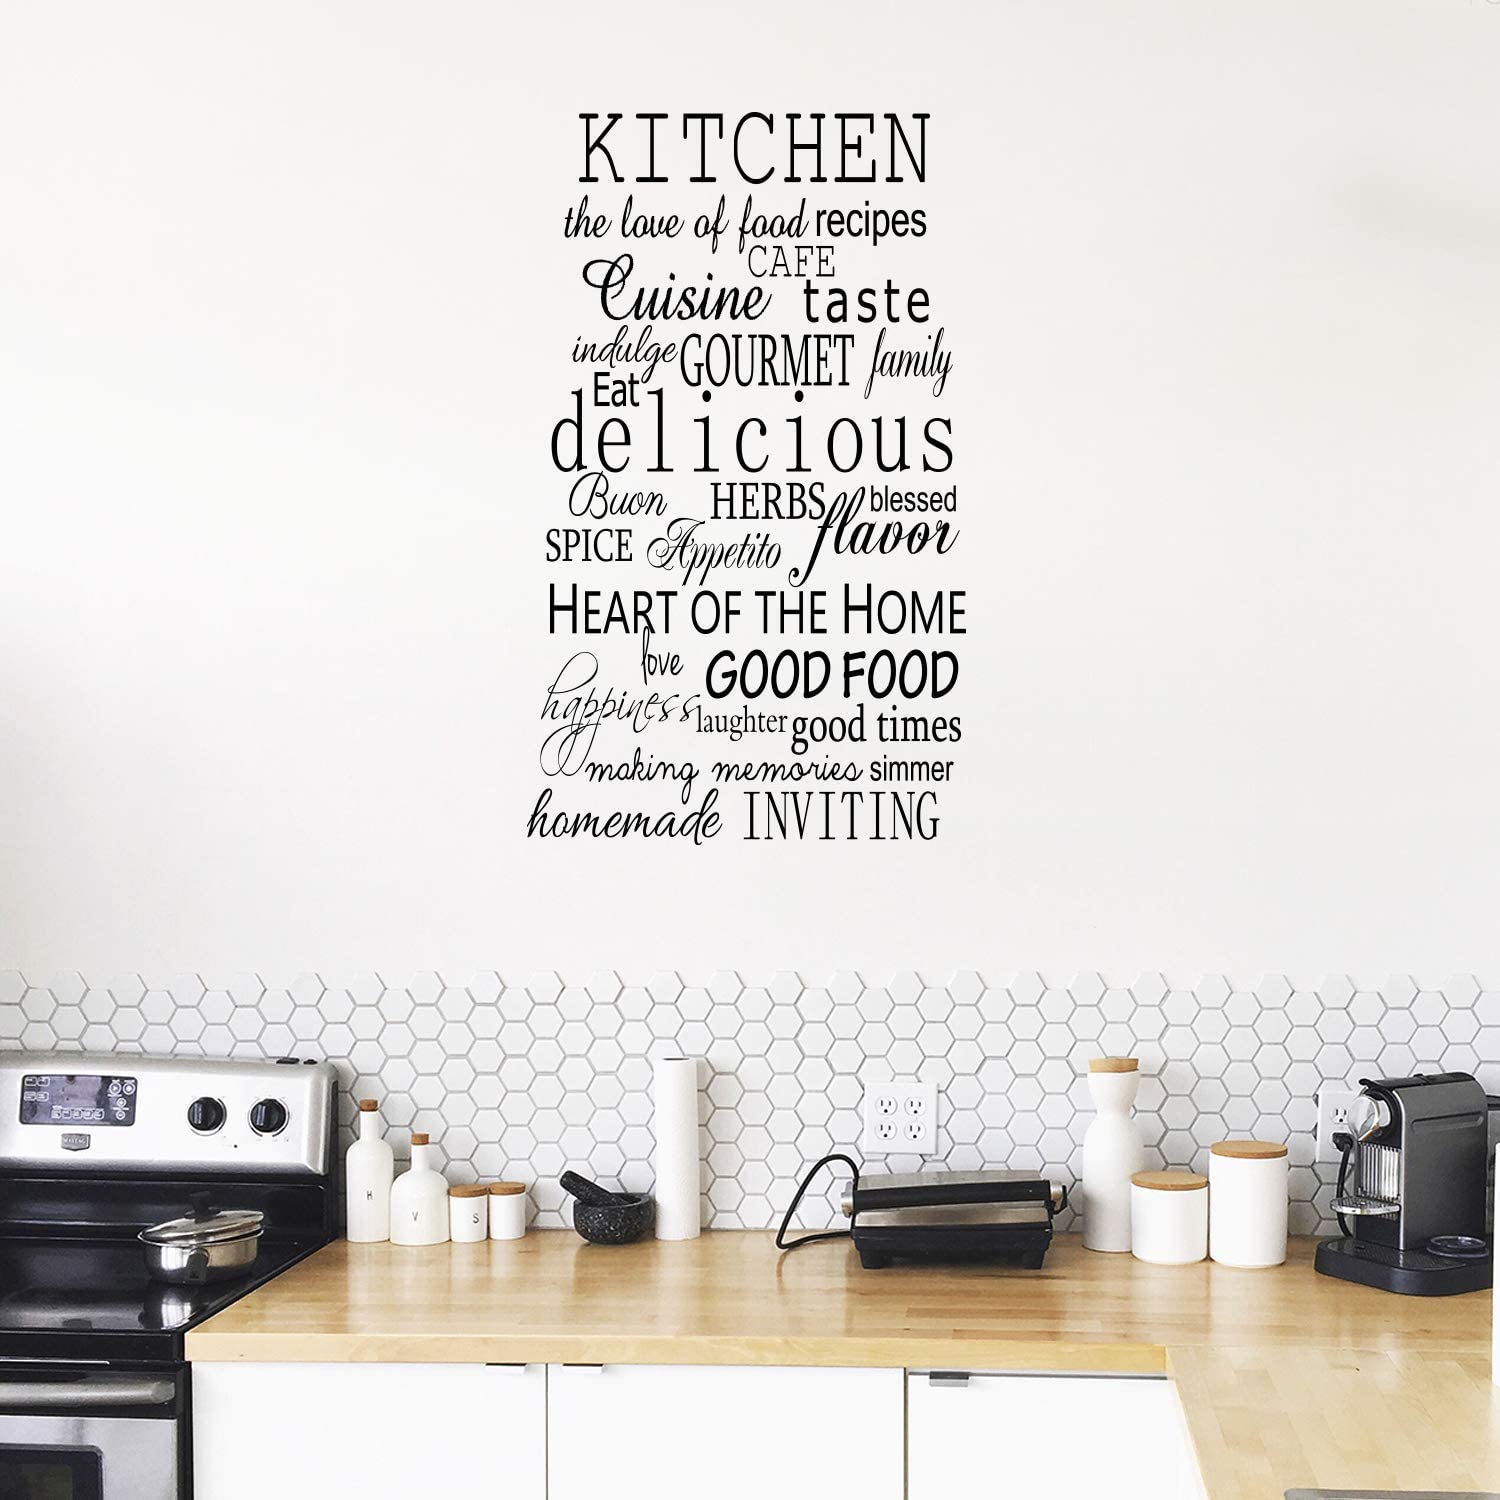 Amazon Com Imprinted Designs Kitchen Words Decorative Vinyl Wall Decal Sticker Art 30 X 38 Arts Crafts Sewing